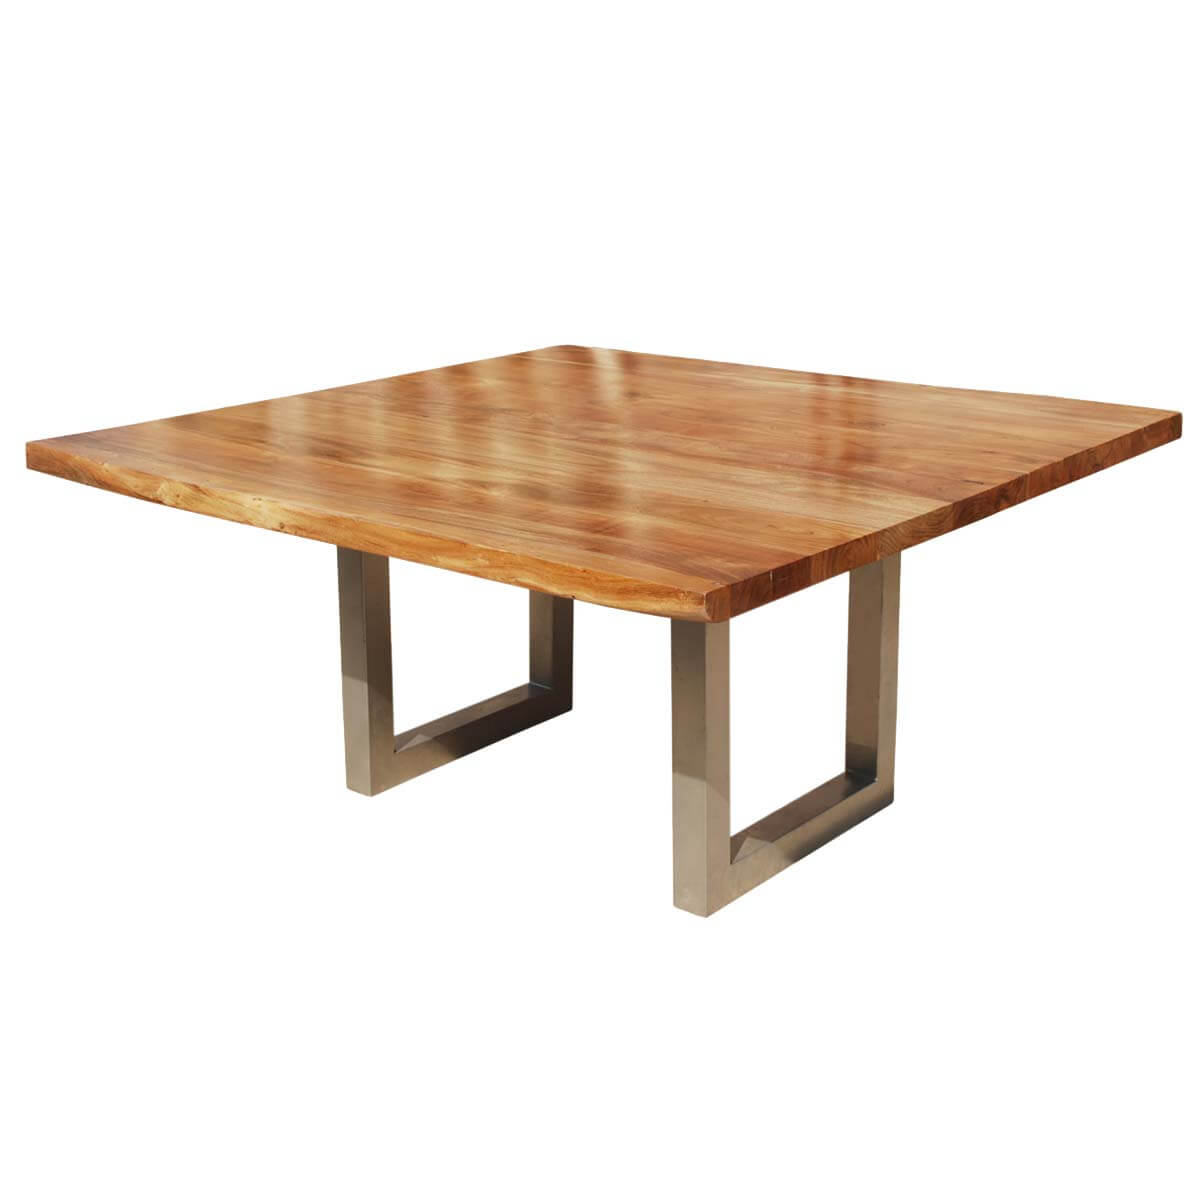 Moab Square Acacia Wood Live Edge Rustic Dining Table. Square Acacia Wood Live Edge Rustic Dining Table